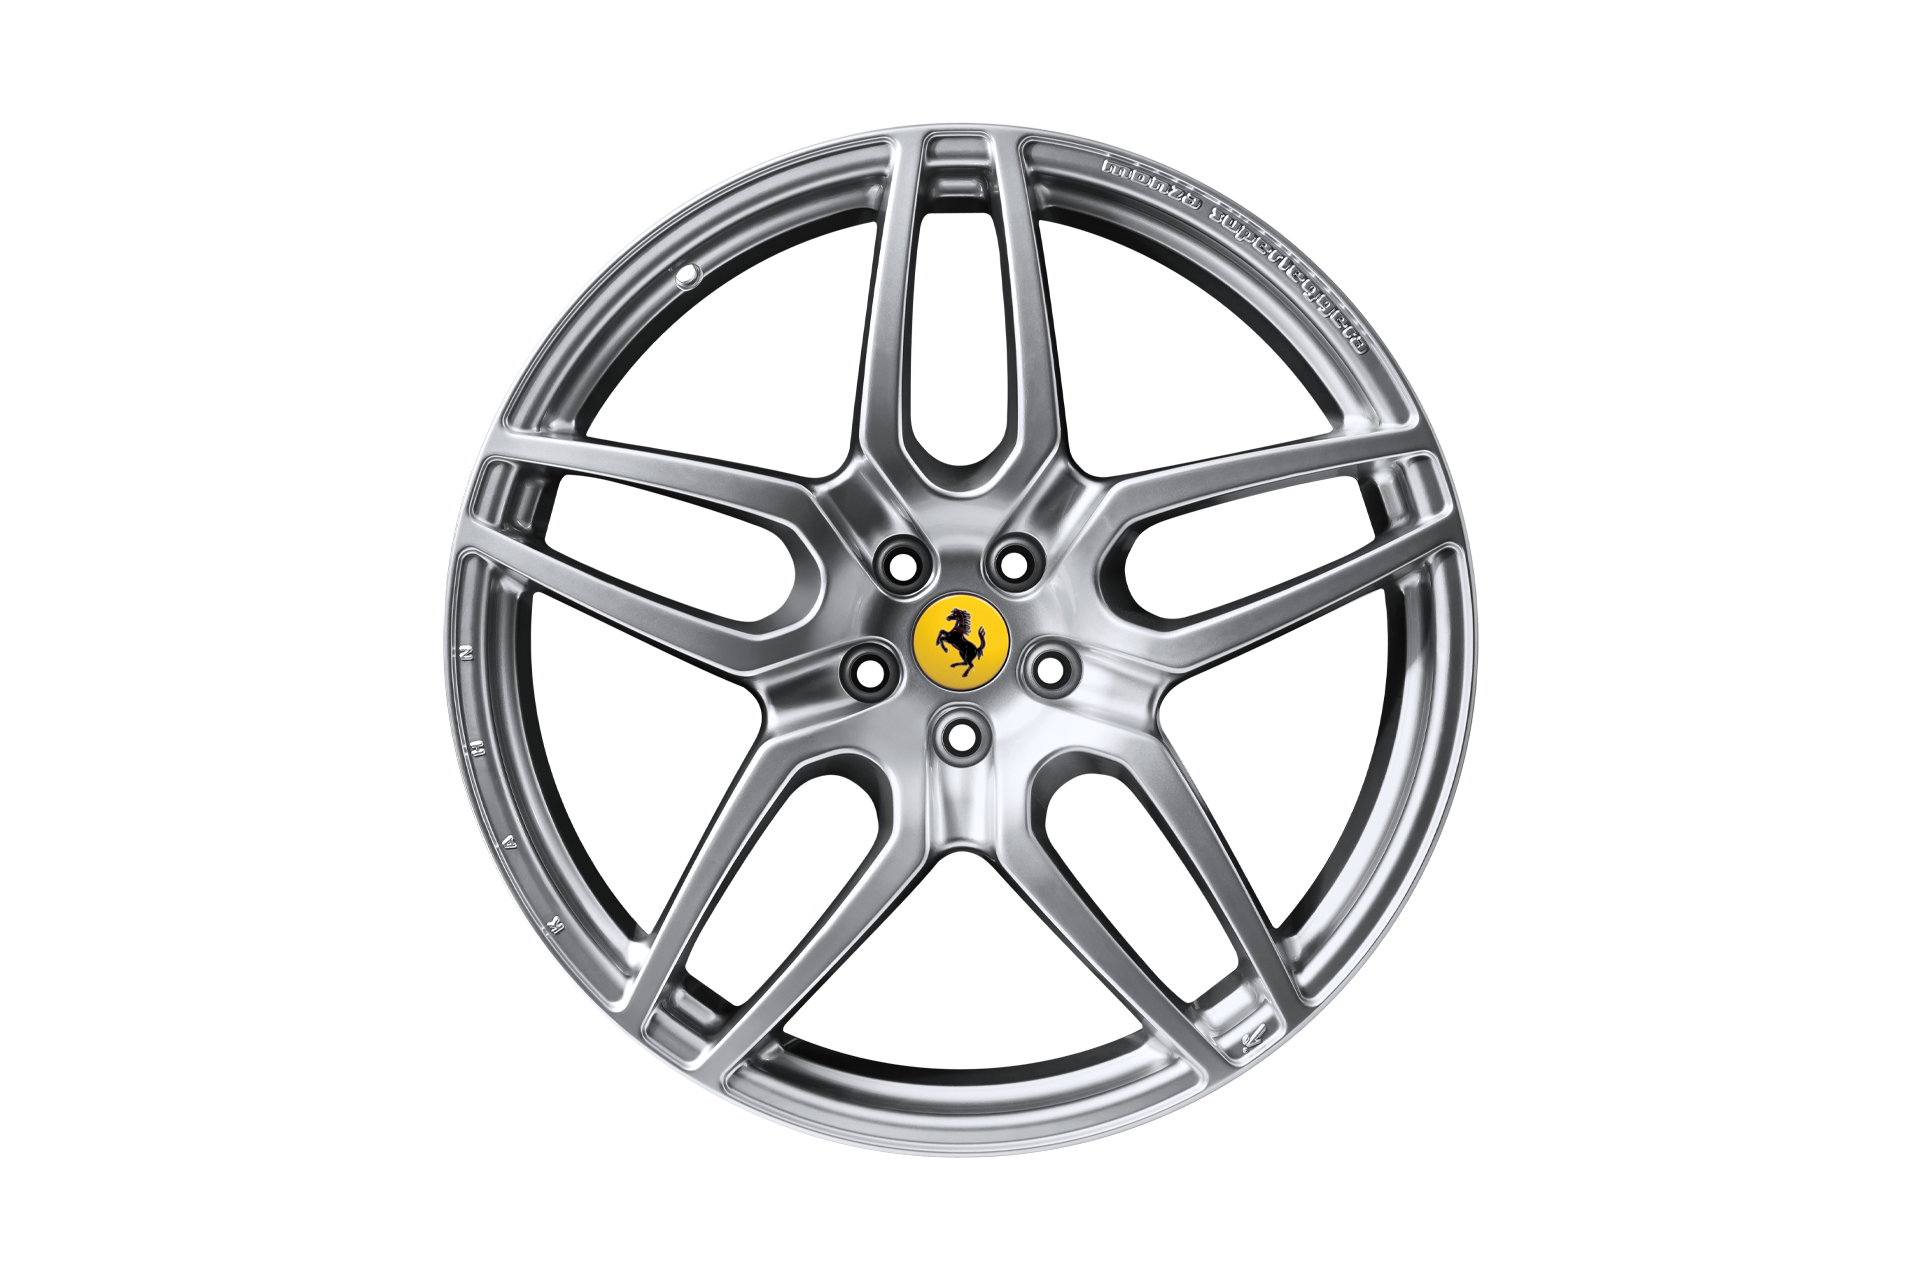 Ferrari Ff Monza Superleggera Light Alloy Wheels by Kahn - Image 4071